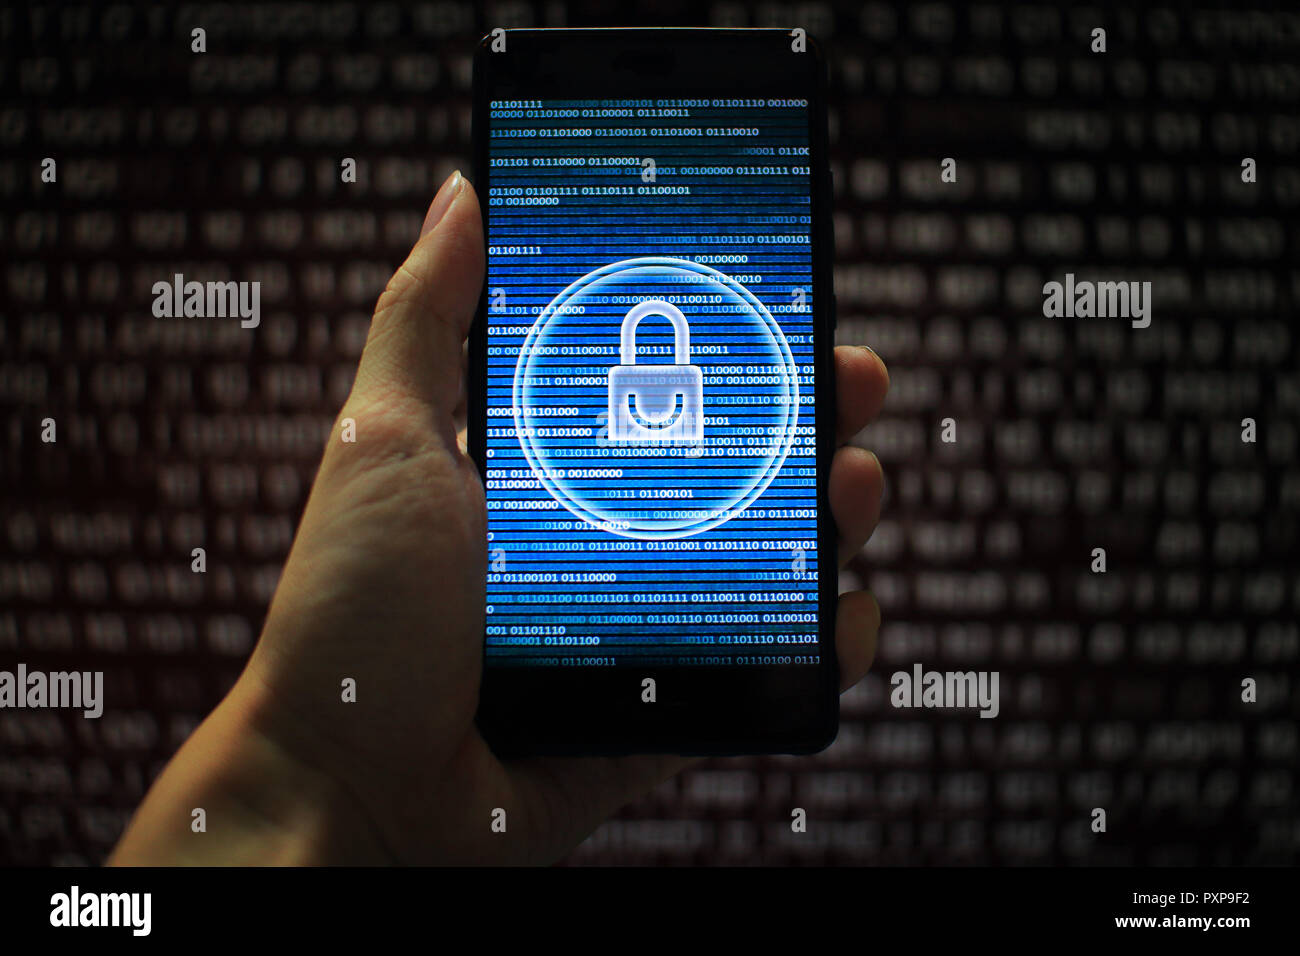 system integrity working while other pass down. hand holding mobile phone with padlock icon on blue binary code screen. Error message in computer. - Stock Image